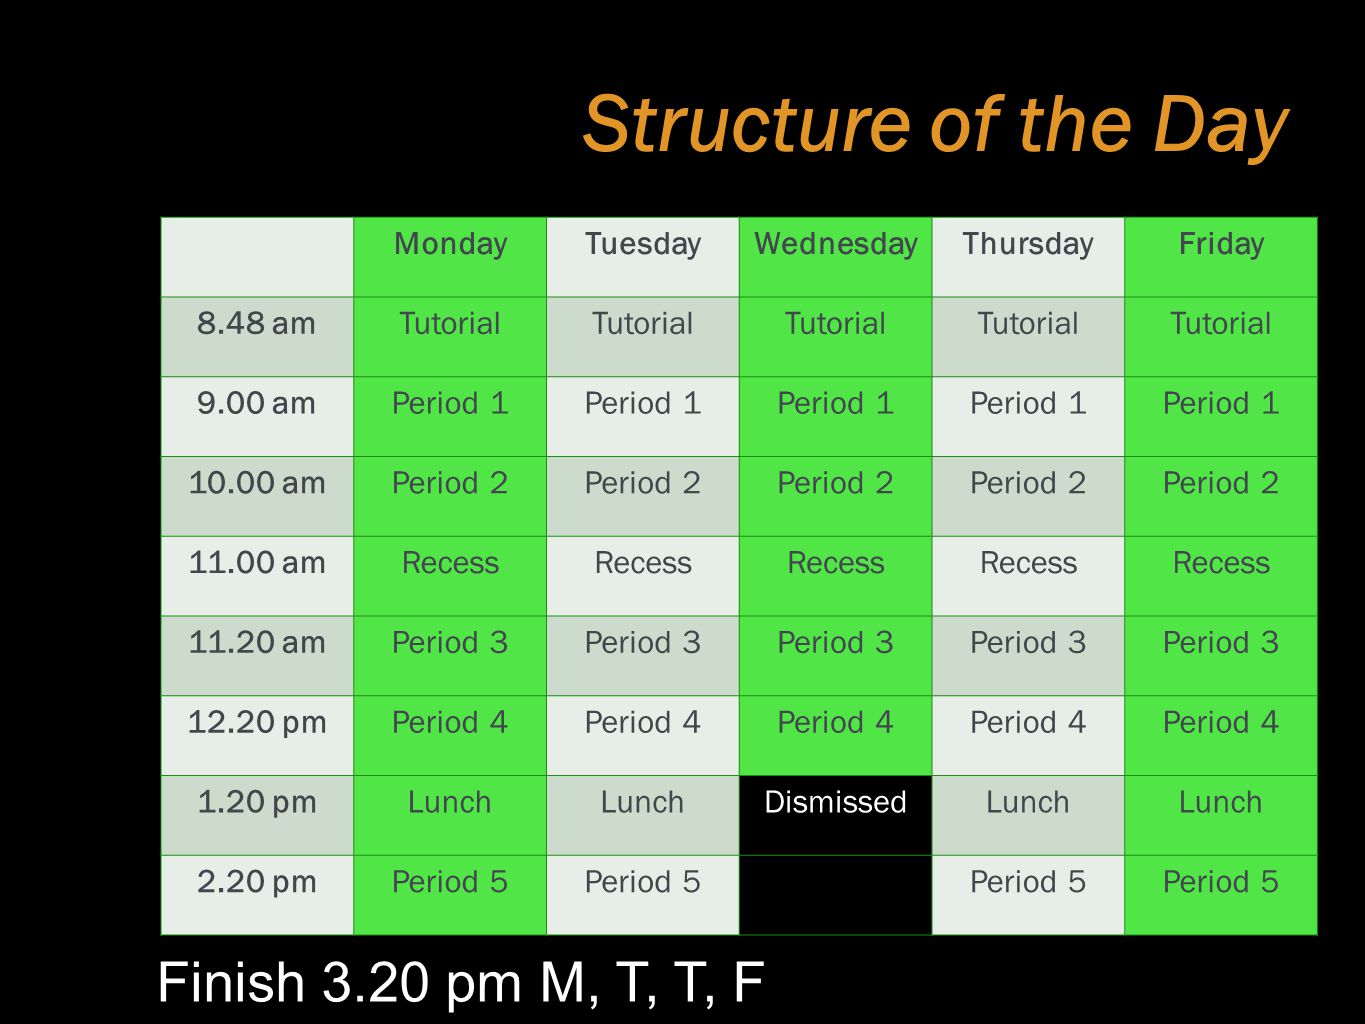 Structure of the Day MondayTuesdayWednesdayThursdayFriday 8.48 amTutorial 9.00 amPeriod 1 10.00 amPeriod 2 11.00 amRecess 11.20 amPeriod 3 12.20 pmPeriod 4 1.20 pmLunch DismissedLunch 2.20 pmPeriod 5 Finish 3.20 pm M, T, T, F